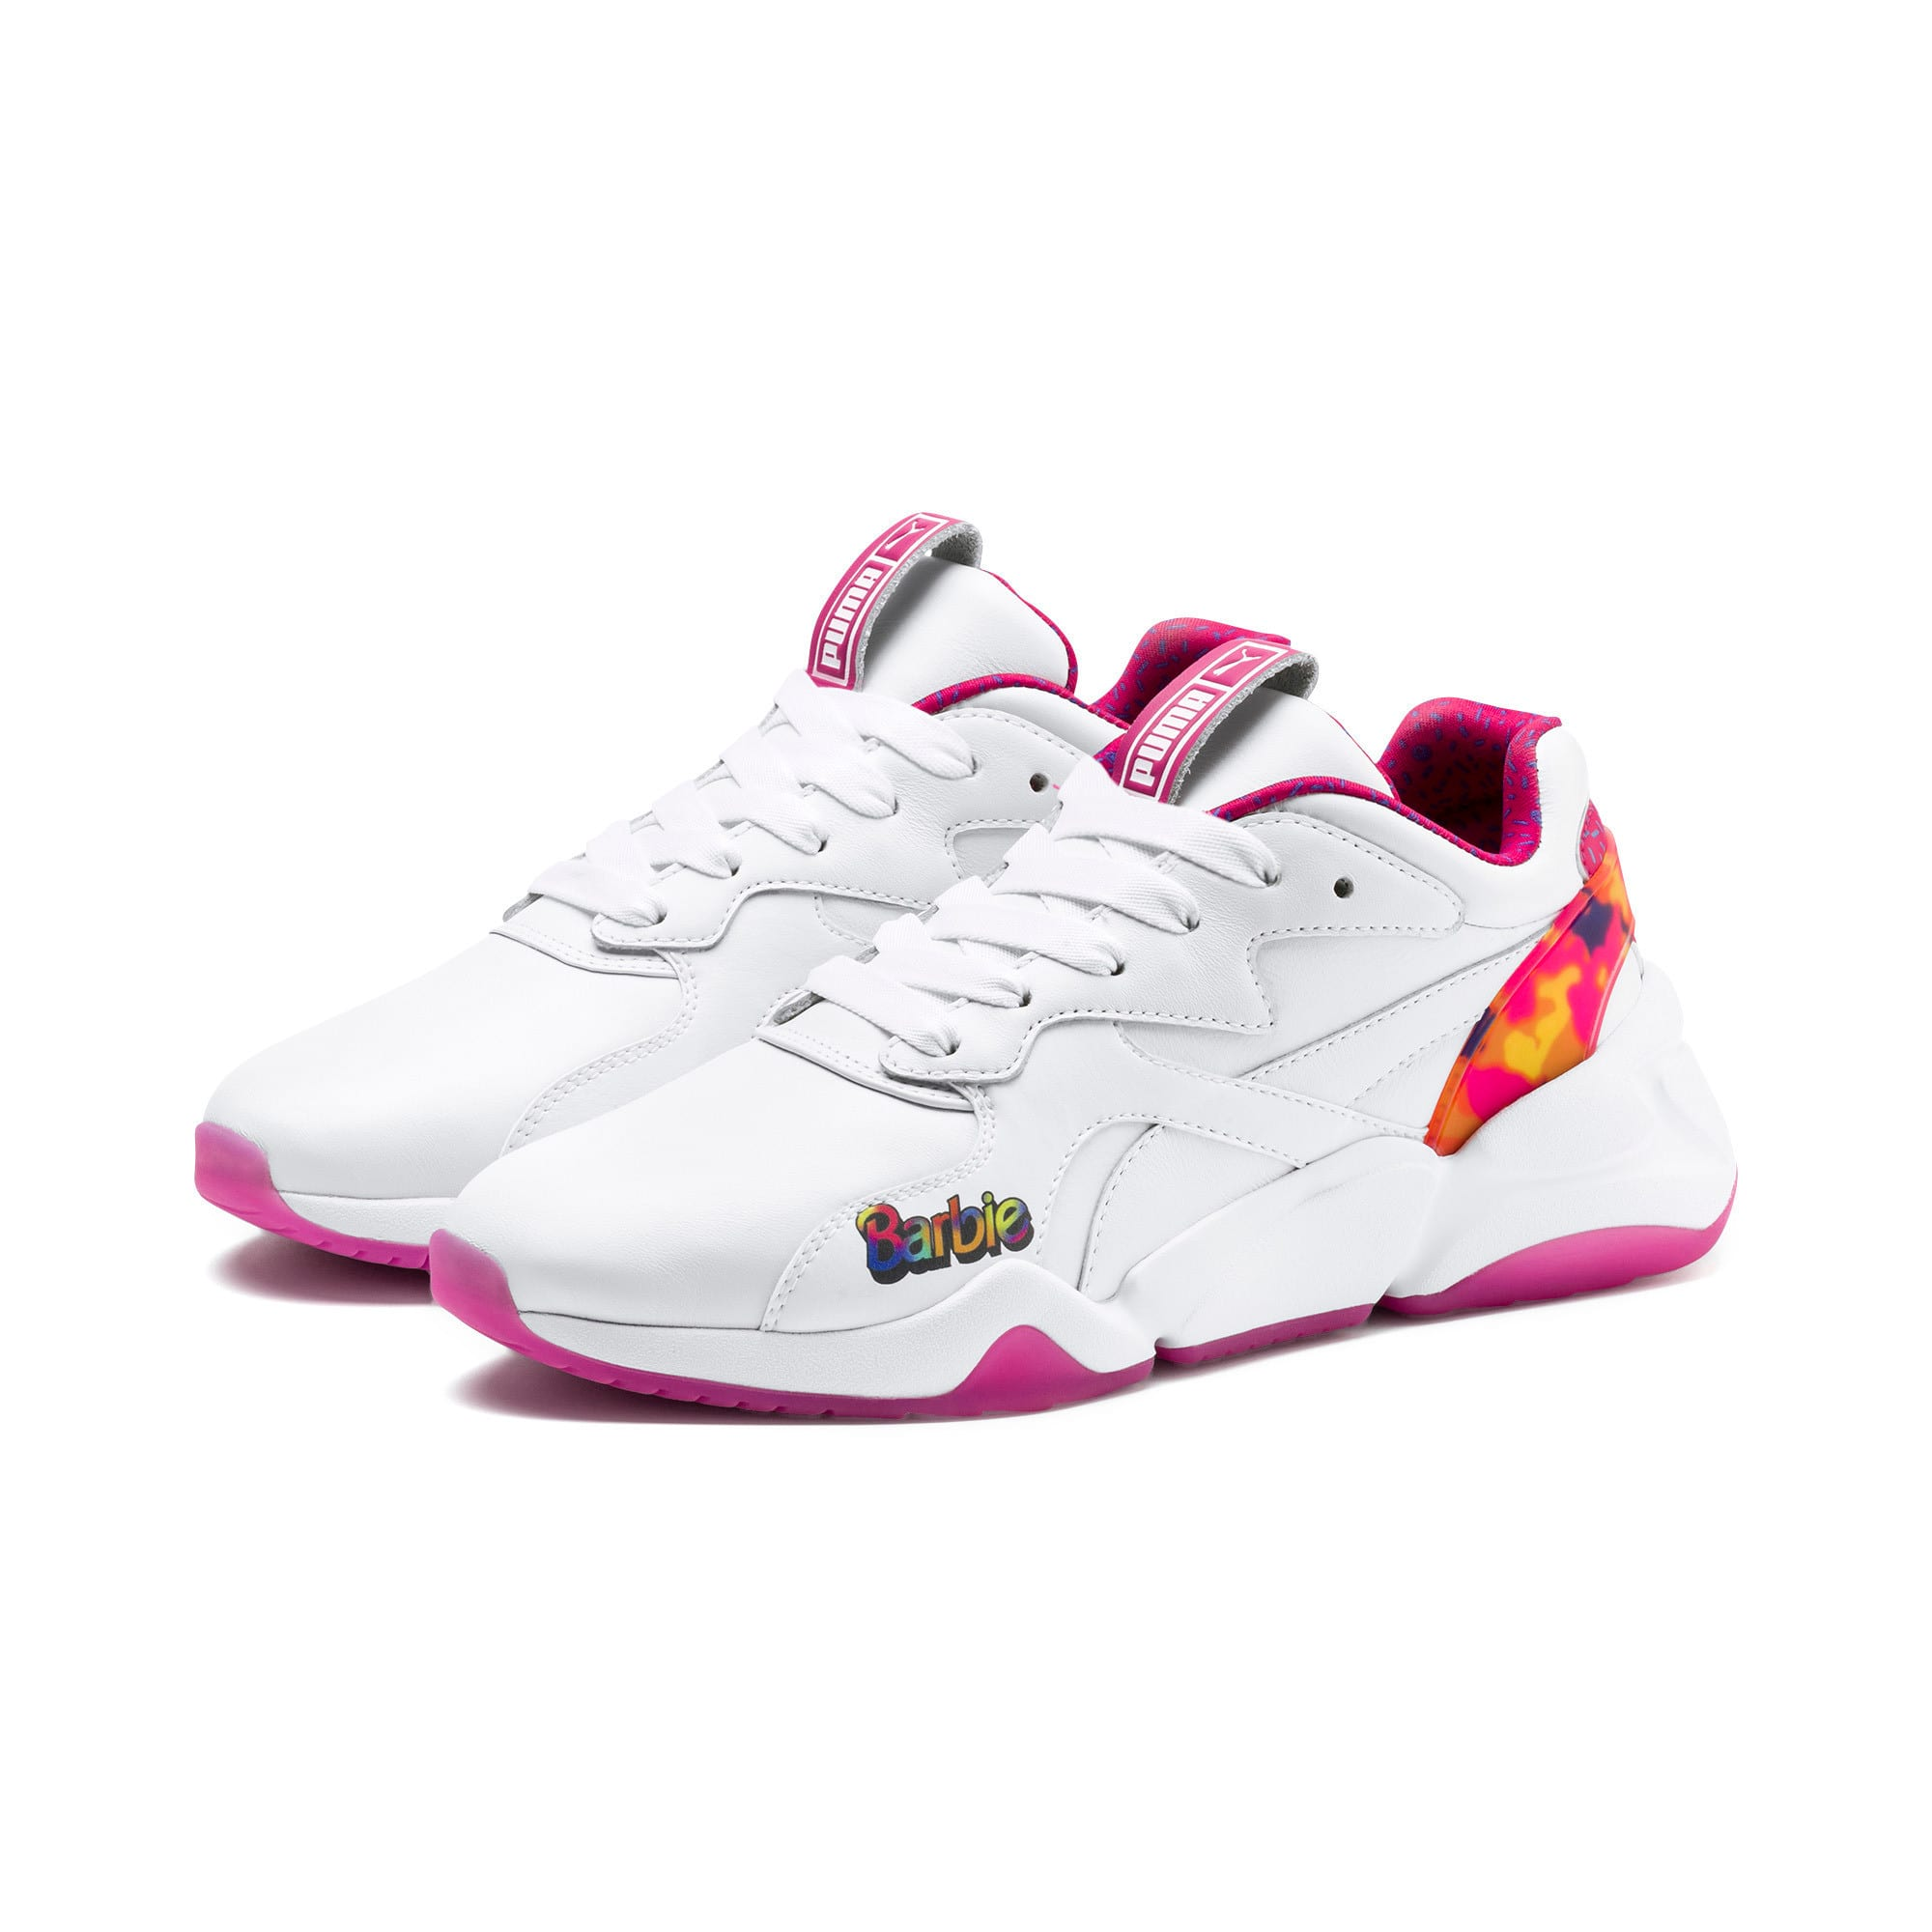 Thumbnail 2 of Nova x Barbie Flash Women's Sneakers, Puma White-CABARET, medium